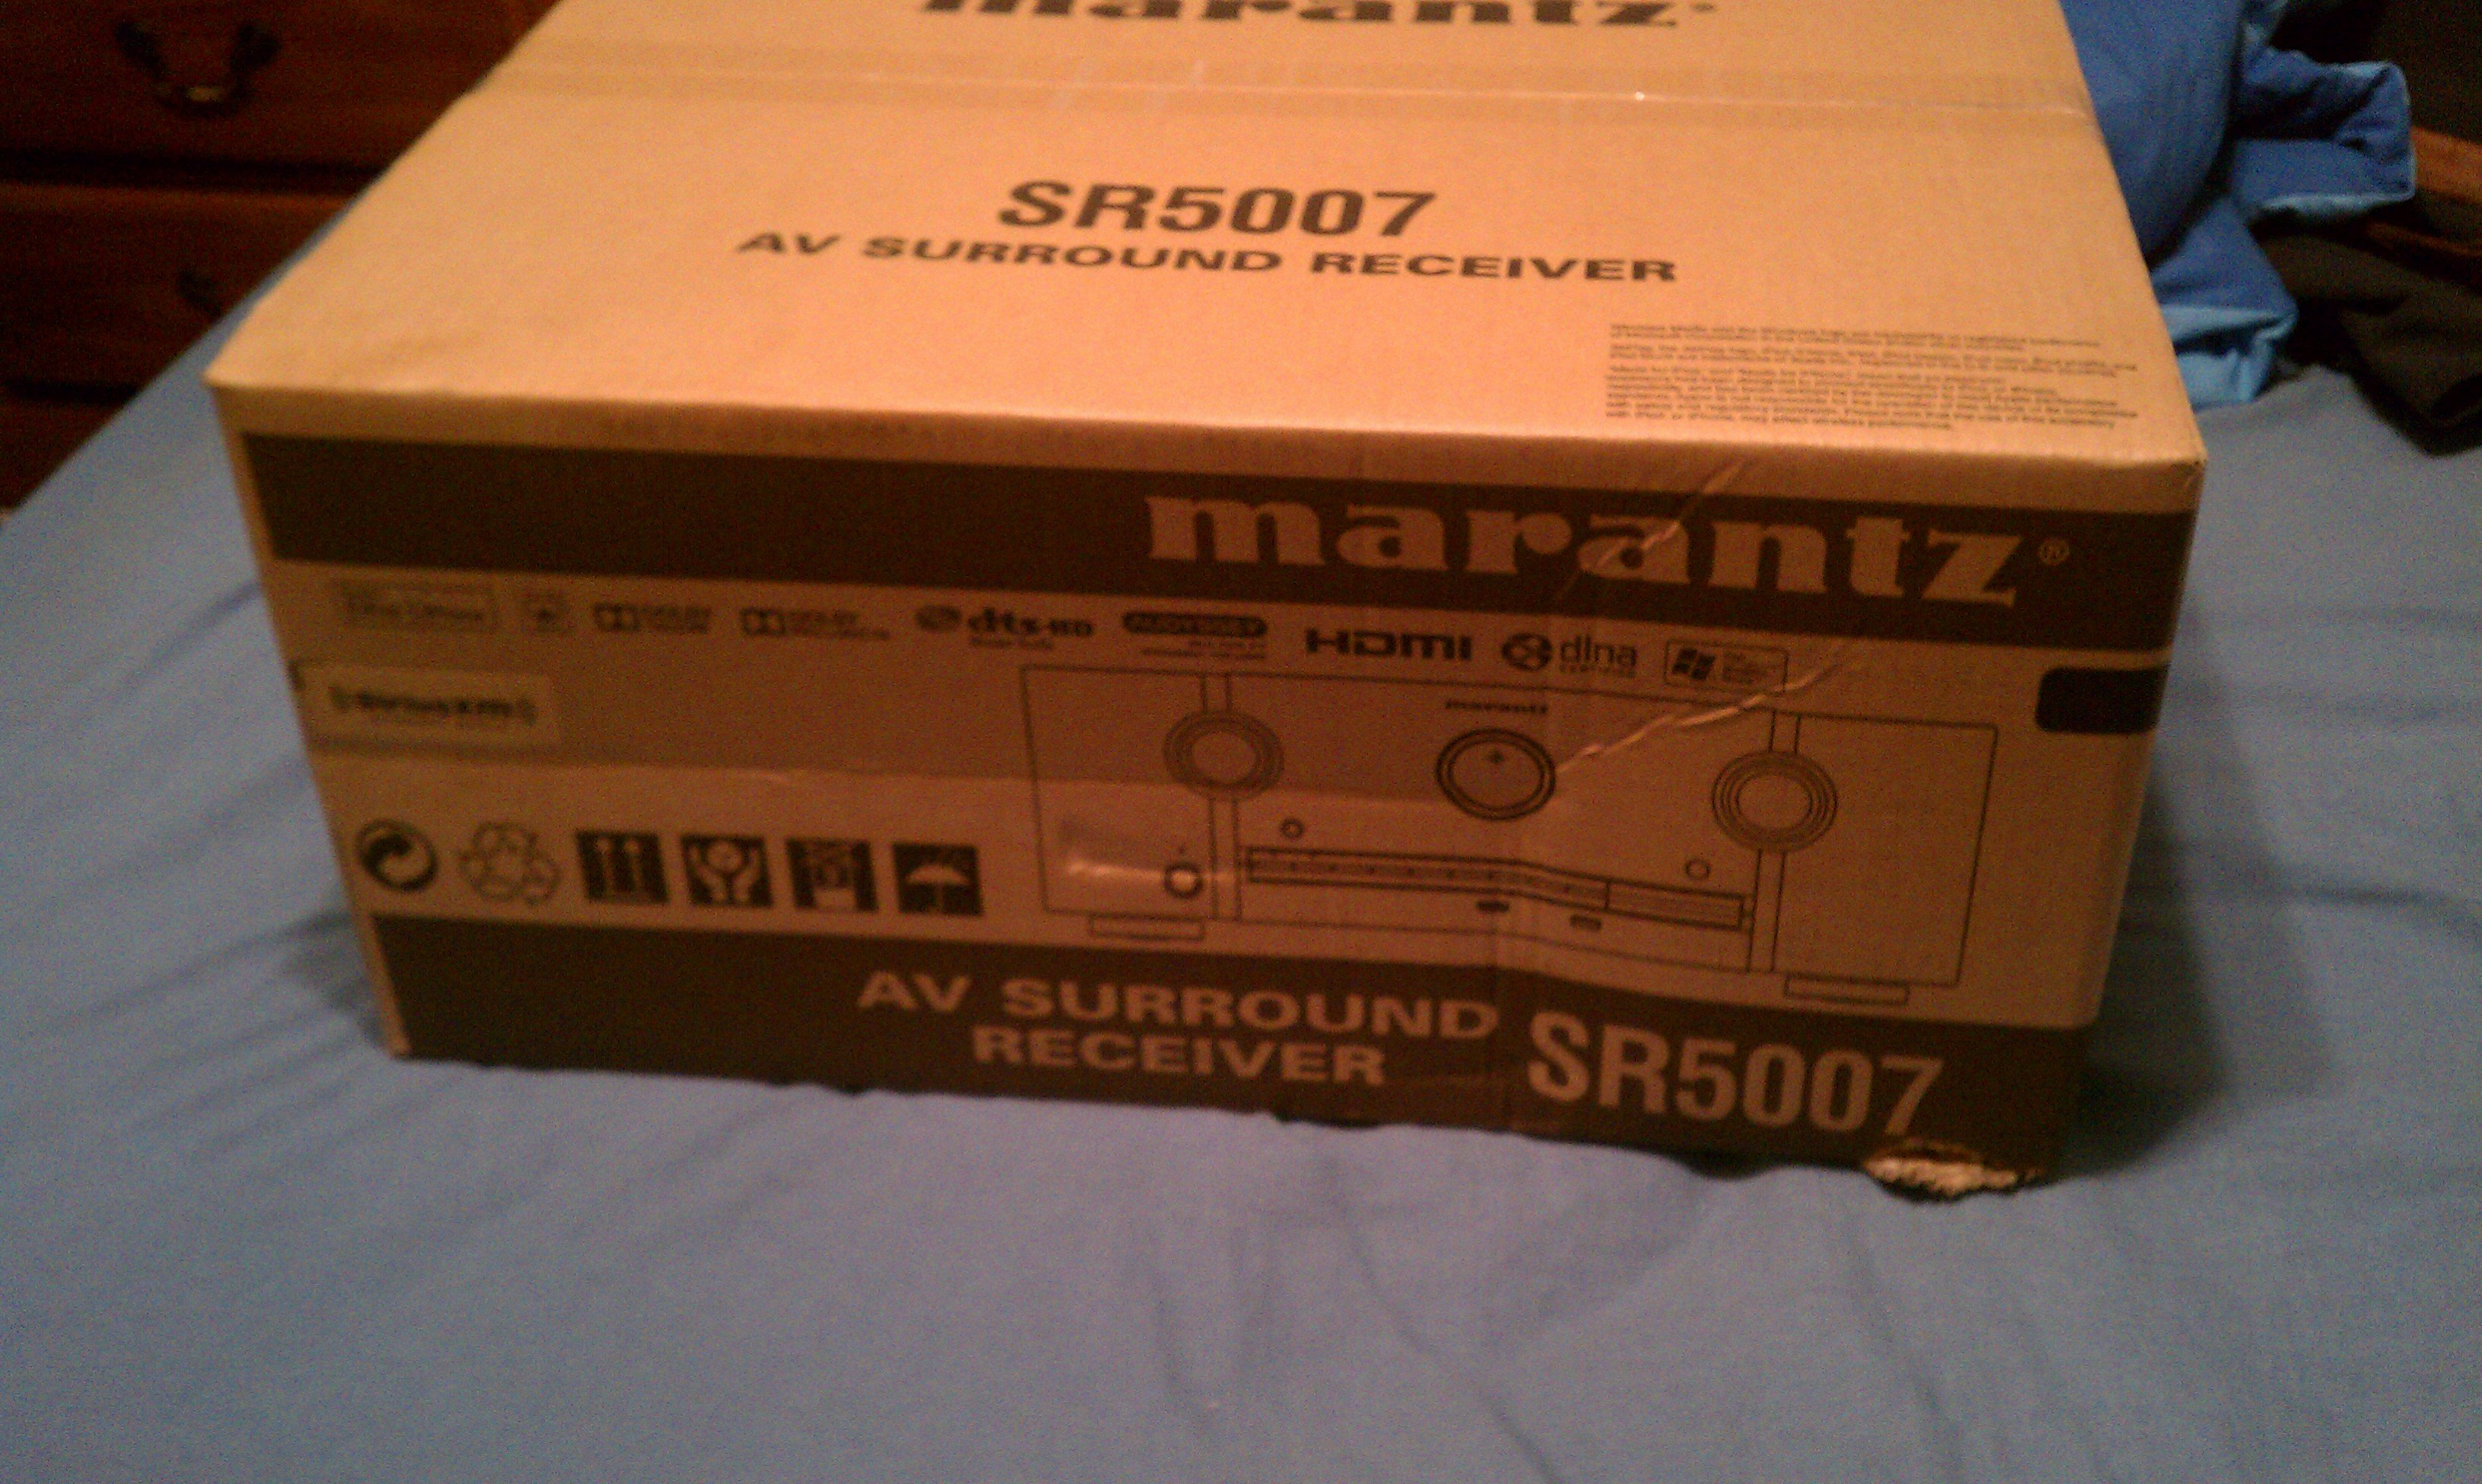 Marantz SR5007 Owner's Thread - AVS Forum | Home Theater